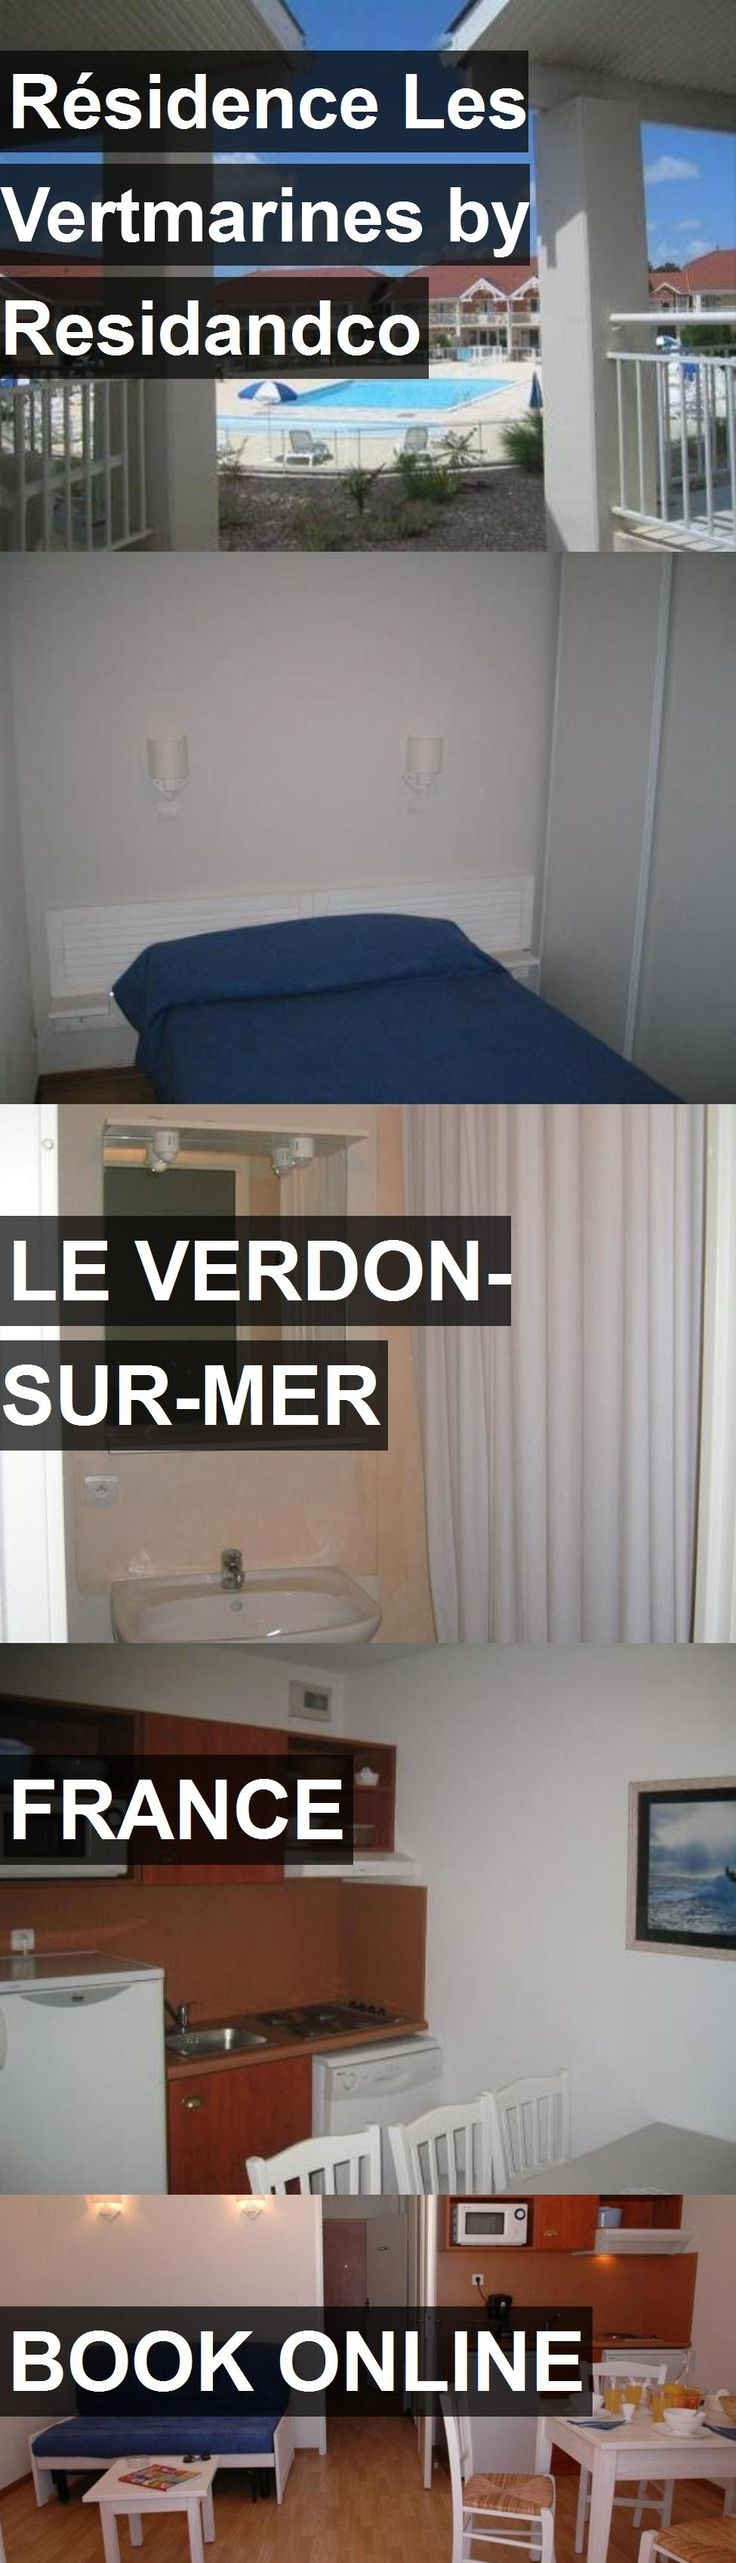 Hotel Résidence Les Vertmarines by Residandco in Le Verdon-Sur-Mer, France. For more information, photos, reviews and best prices please follow the link. #France #LeVerdon-Sur-Mer #RésidenceLesVertmarinesbyResidandco #hotel #travel #vacation